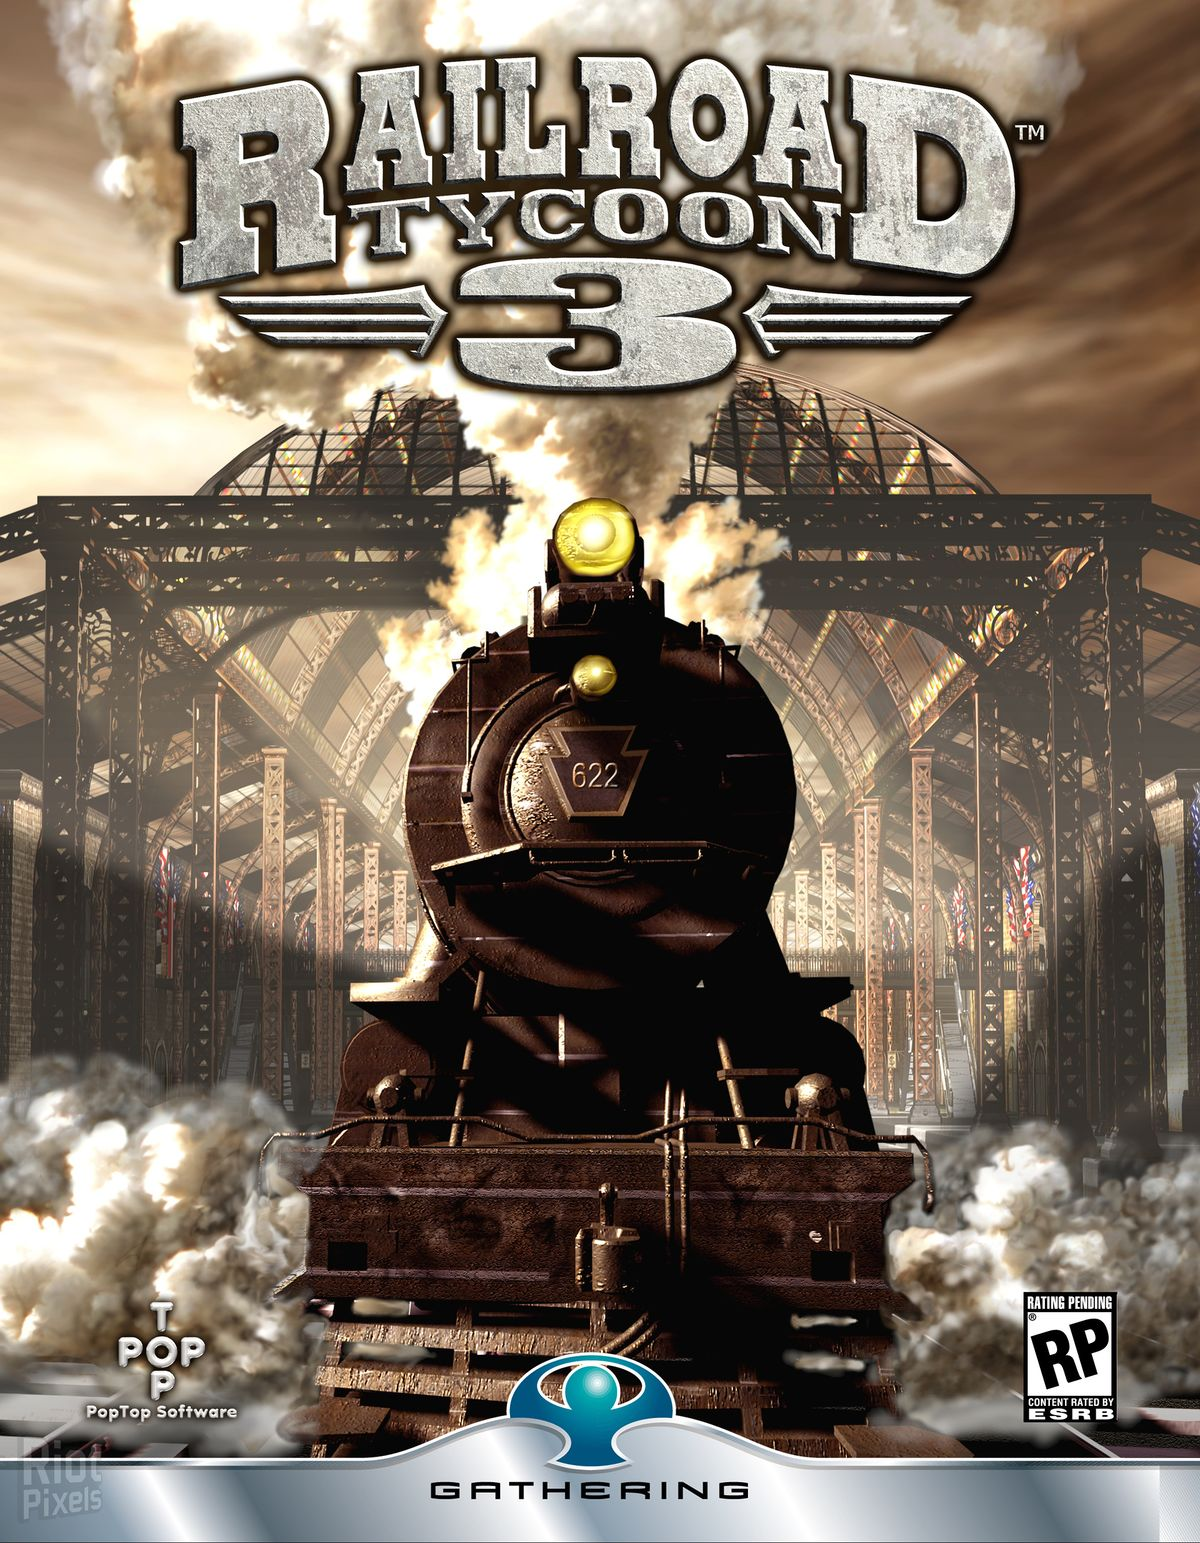 Railroad Tycoon 3  StrategyWiki the video game